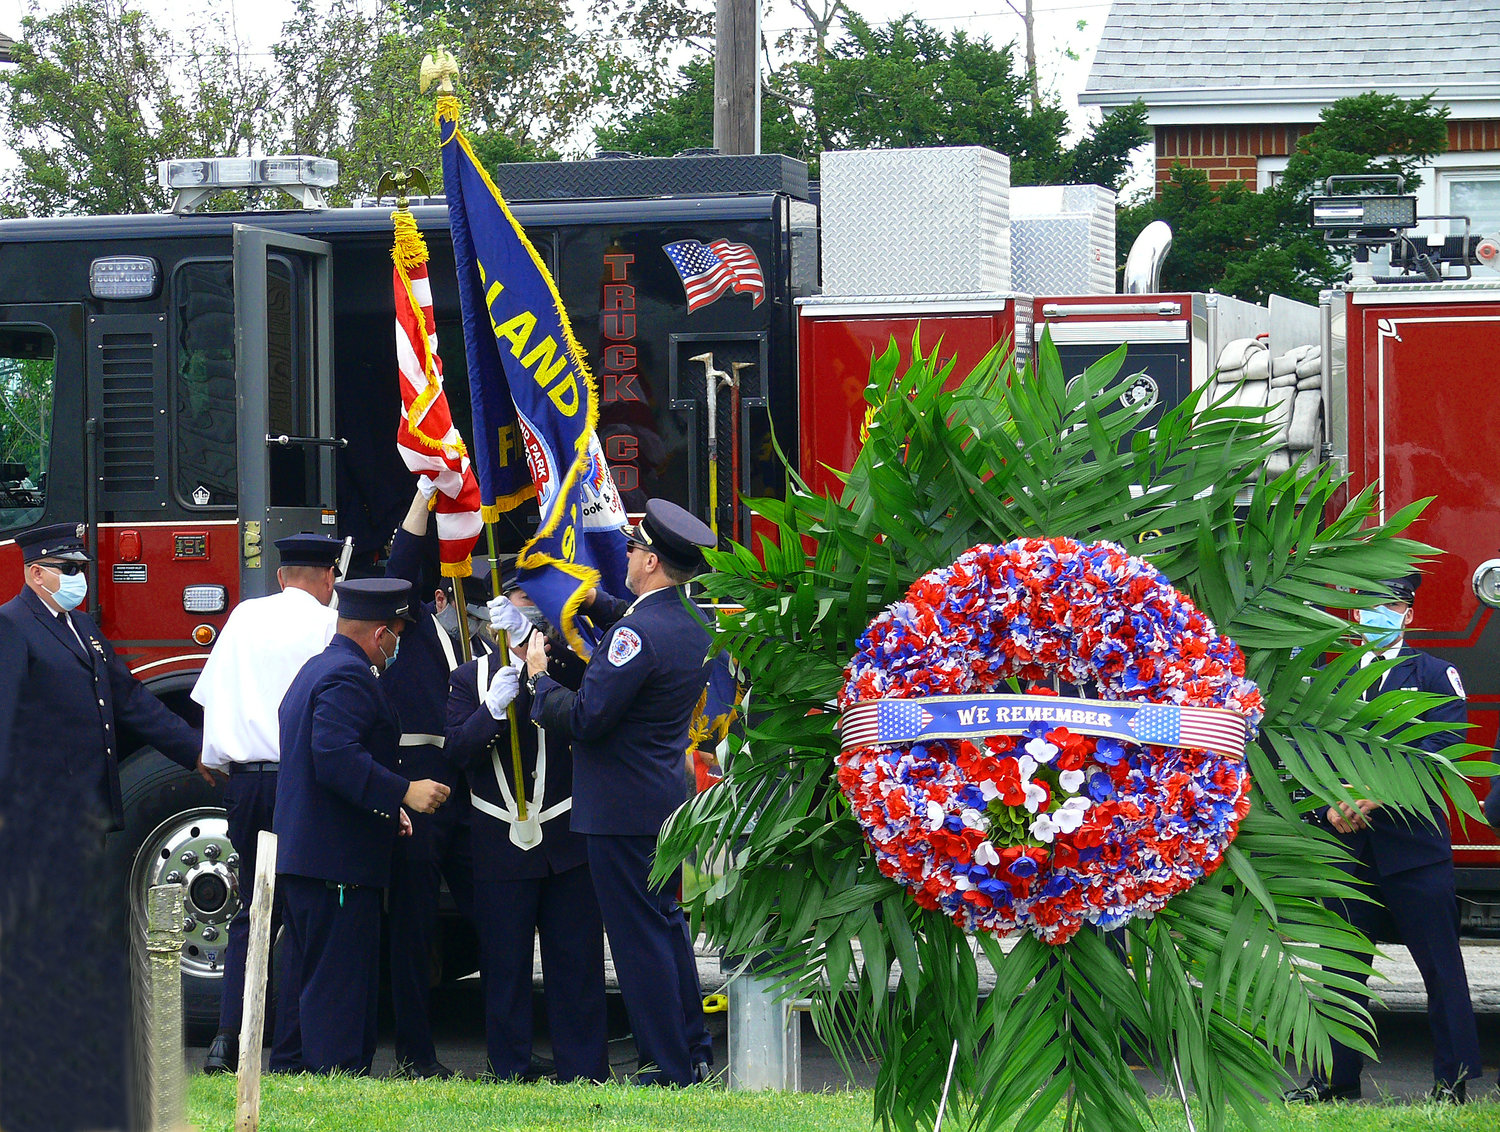 A wreath was placed in remembrance during Island Park's ceremony commemorating 9/11.